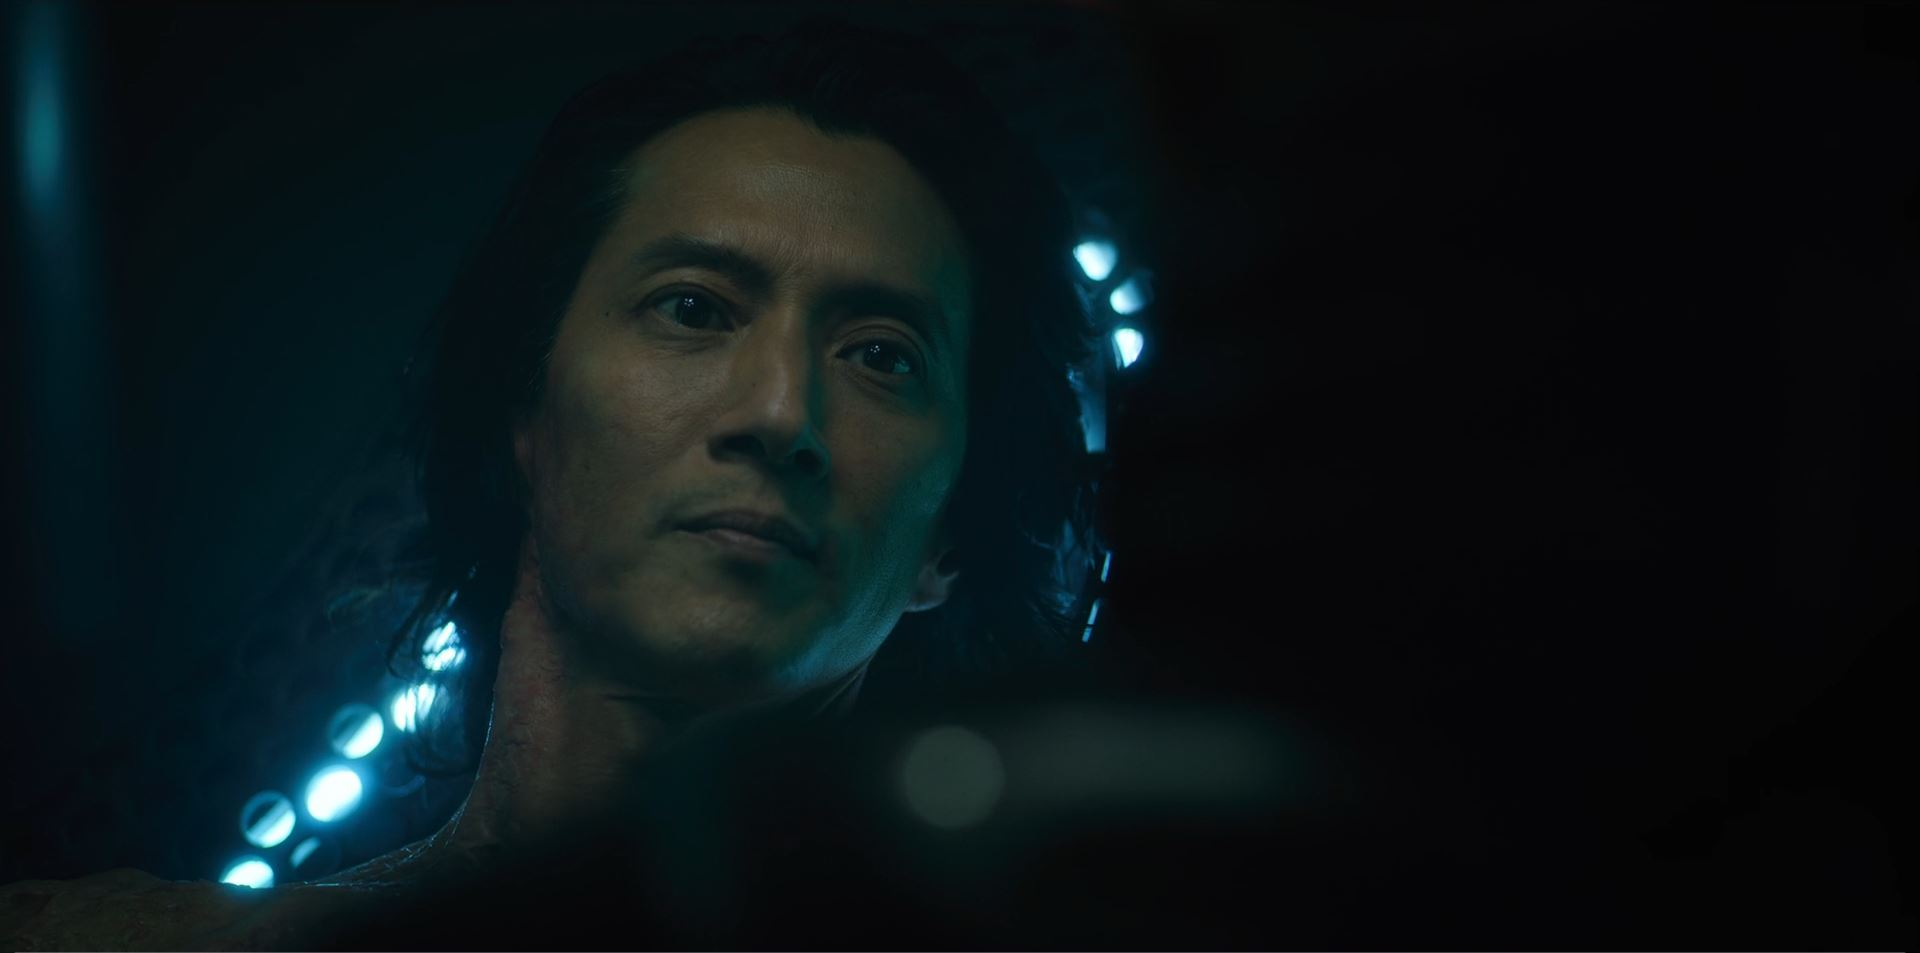 Altered Carbon Season 2 Review - Takeshi Kovacs played by Will yun Lee